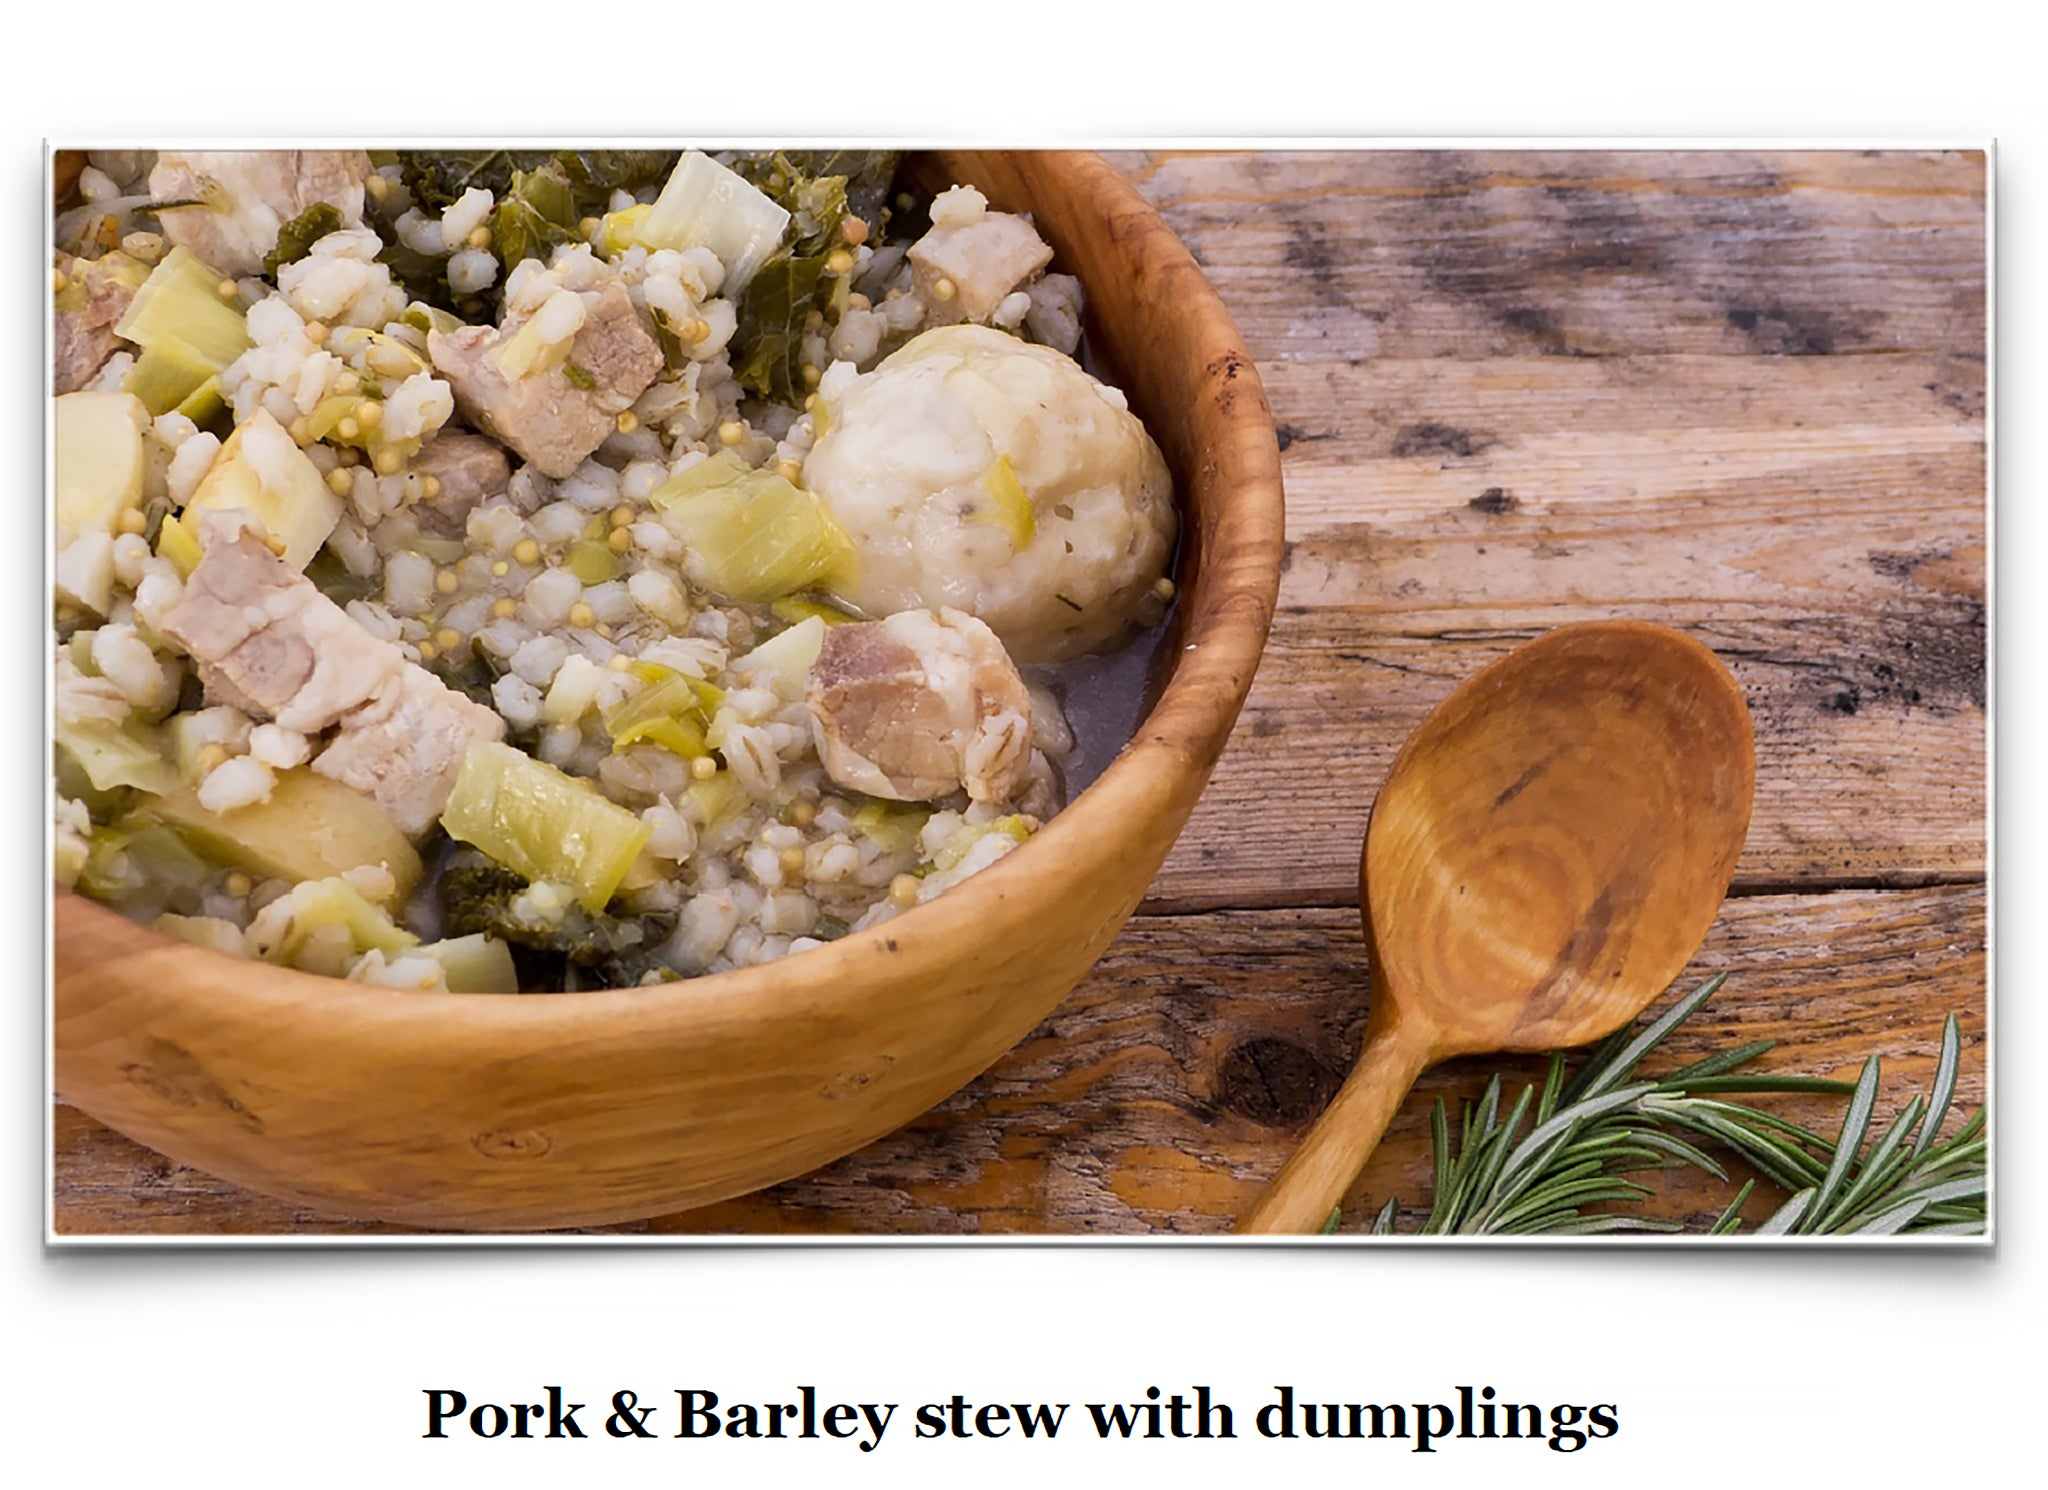 Eat Like a Viking Book - Pork & Barley Stew with Dumplings